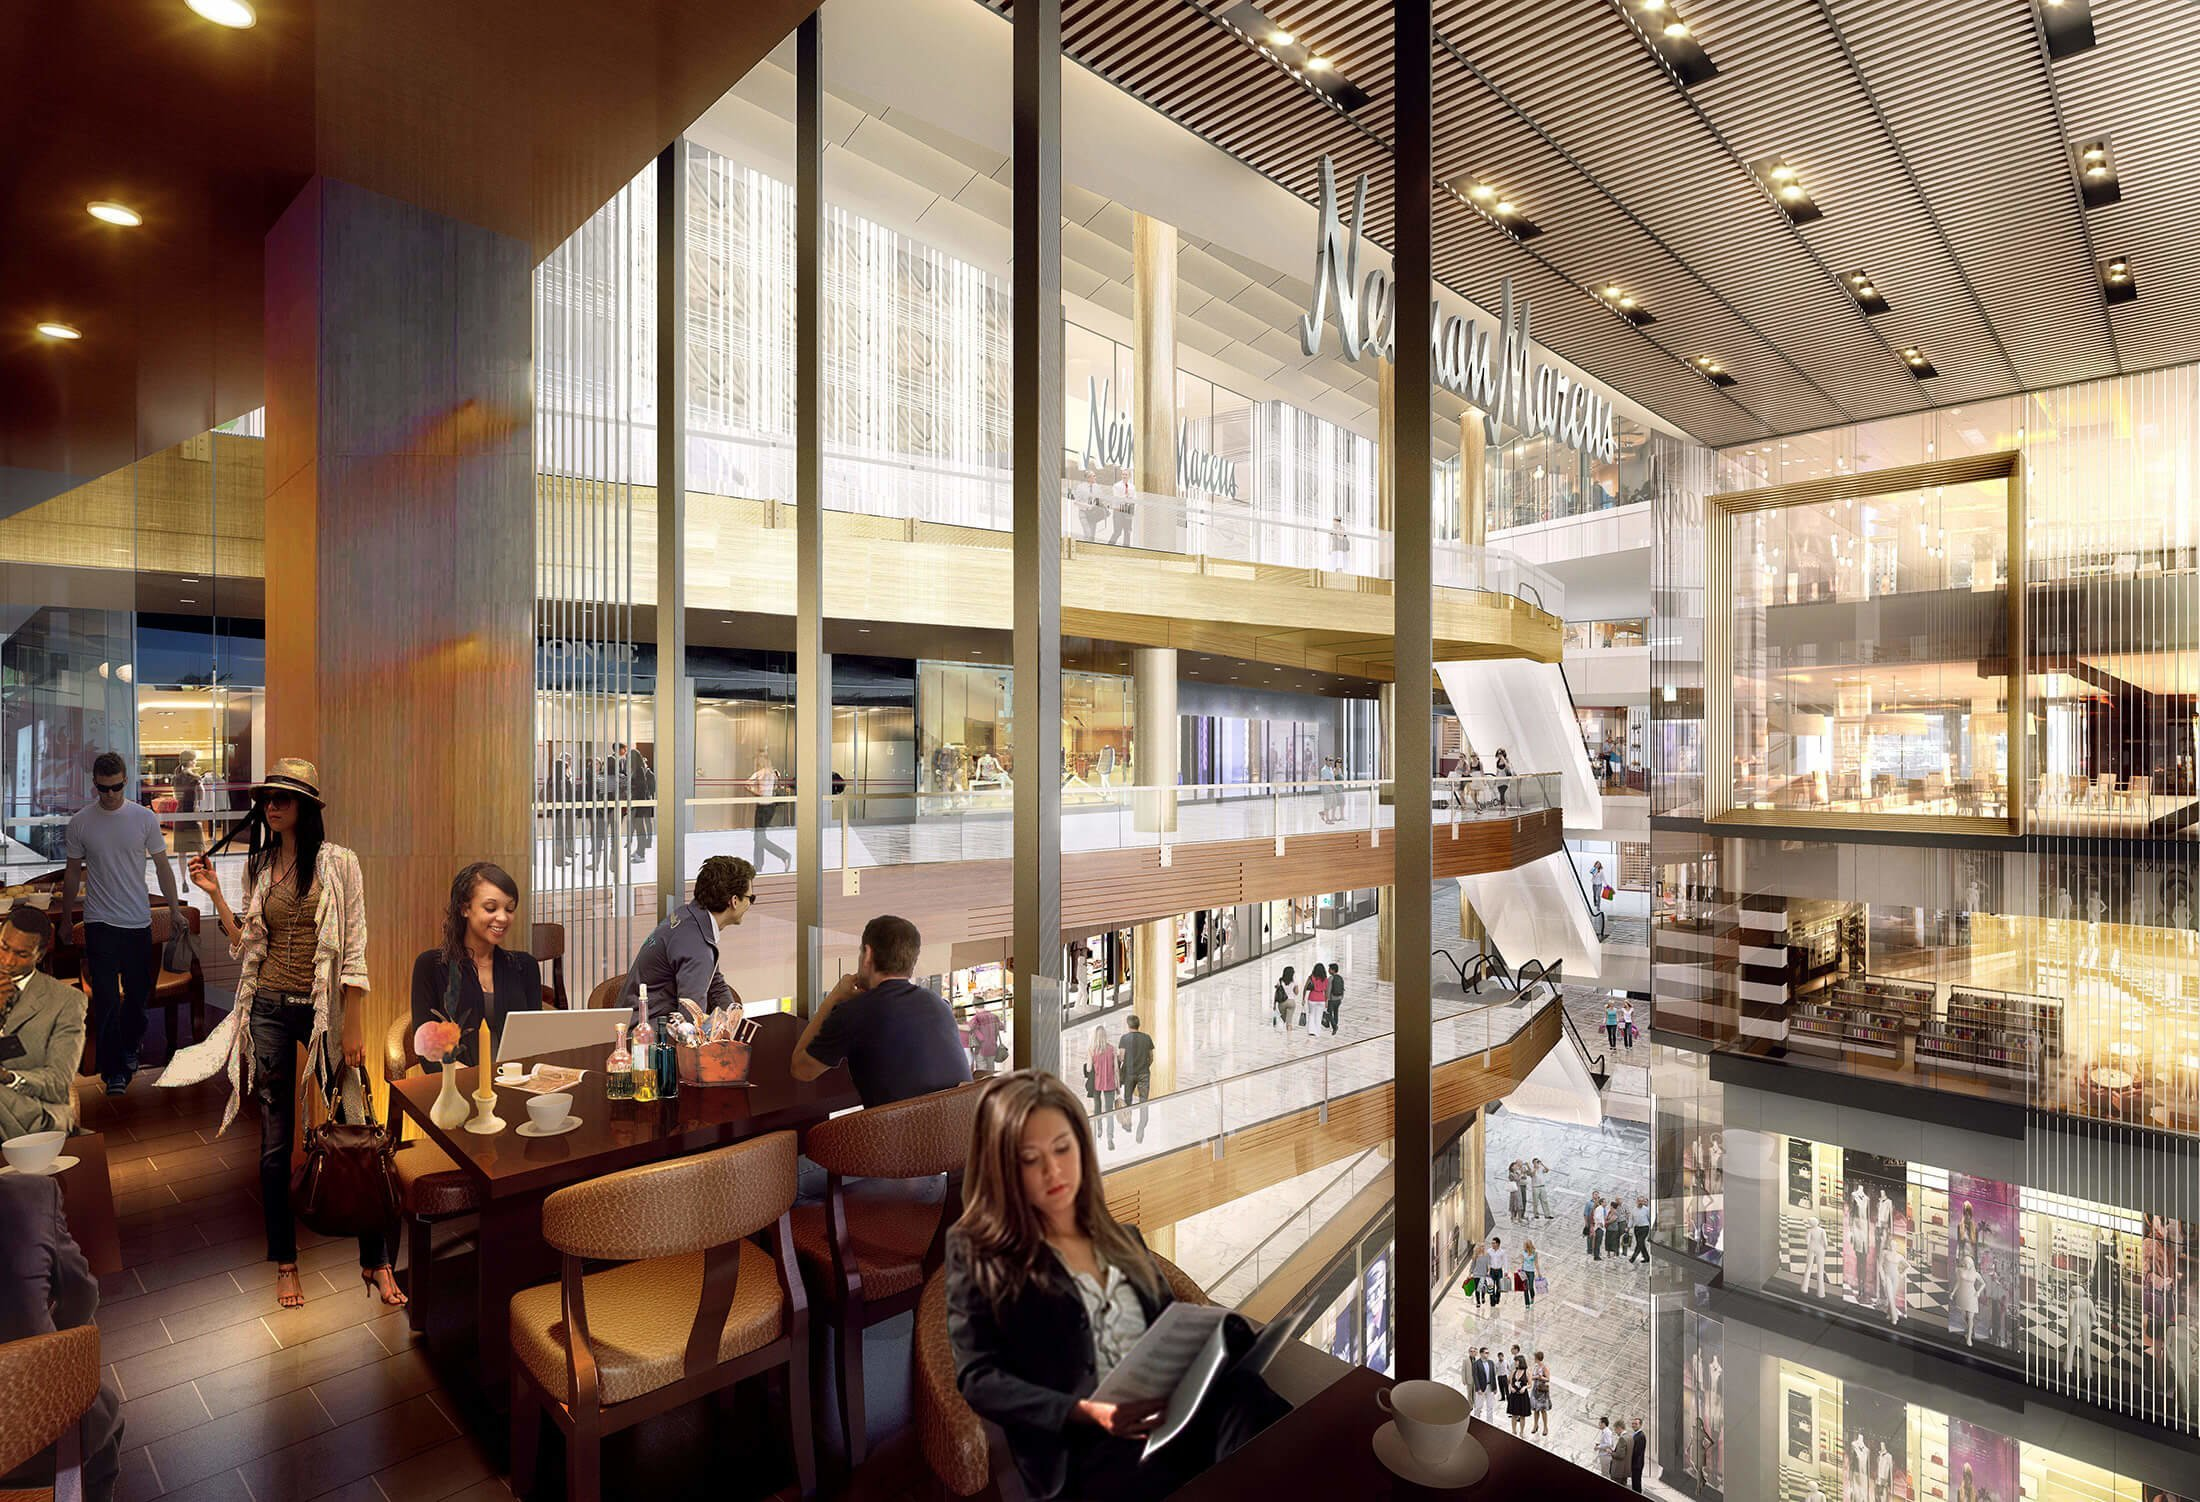 The-View-from-The-Kitchens-at-The-Shops-at-Hudson-Yards-Courtesy-Related-Oxford.jpg